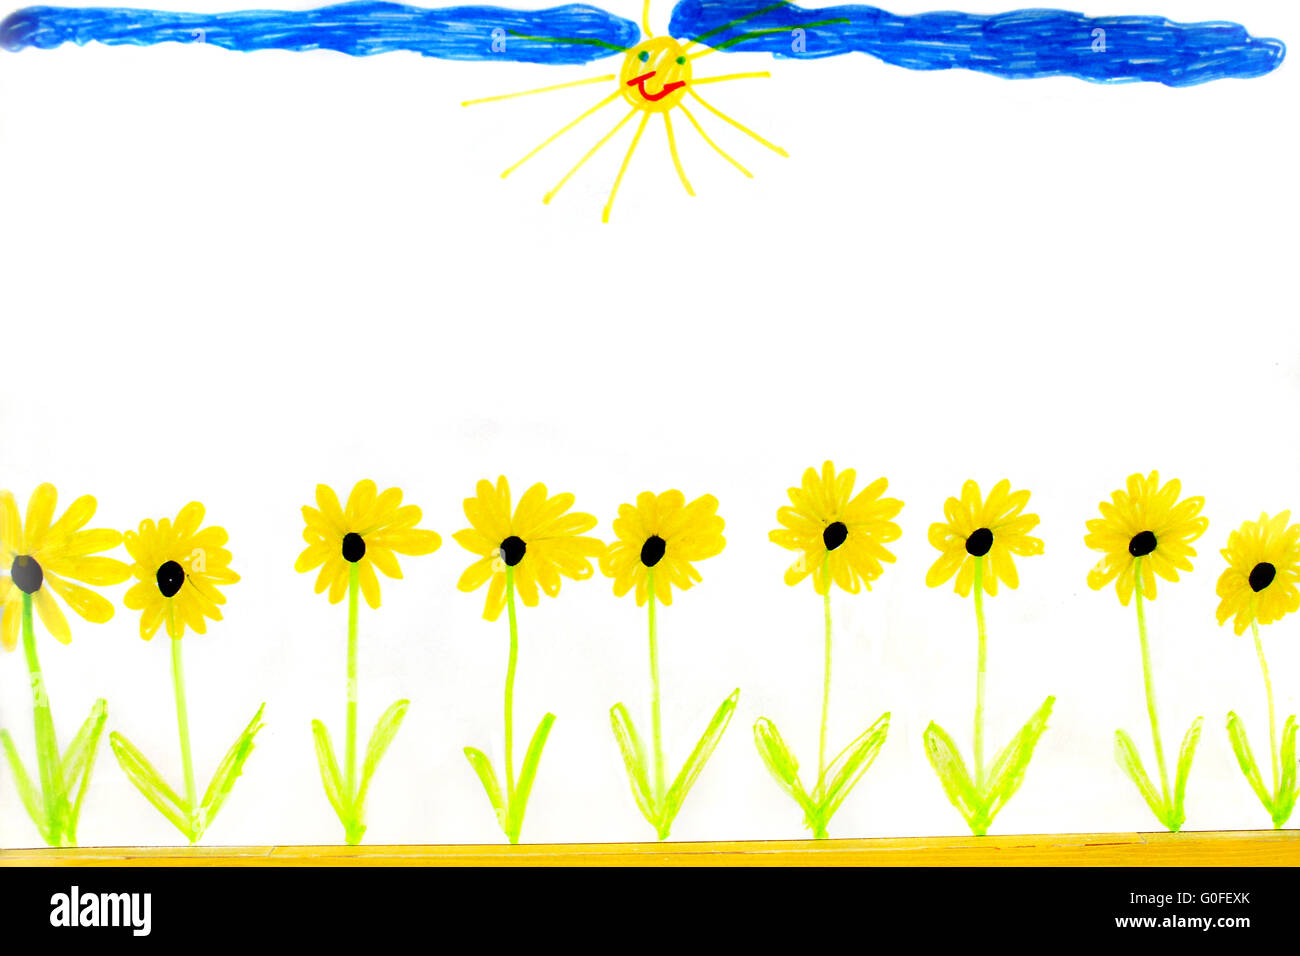 Childish Drawing Of Summer Yellow Flowers In Row Stock Photo